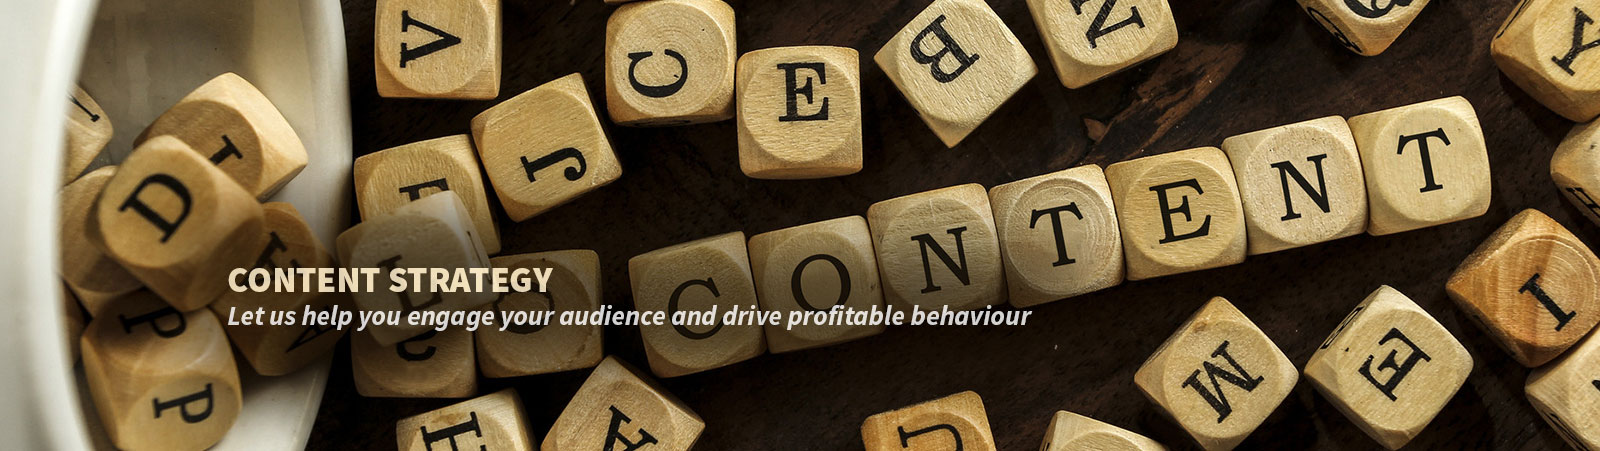 <p>Good content provides value! What do we mean by content? Content is both information and communication. It is a compilation of information, ideas and messages that are translated into some kind of written or visual format for others to engage with. We will help you engage your audience &#8211; both [&hellip;]</p>